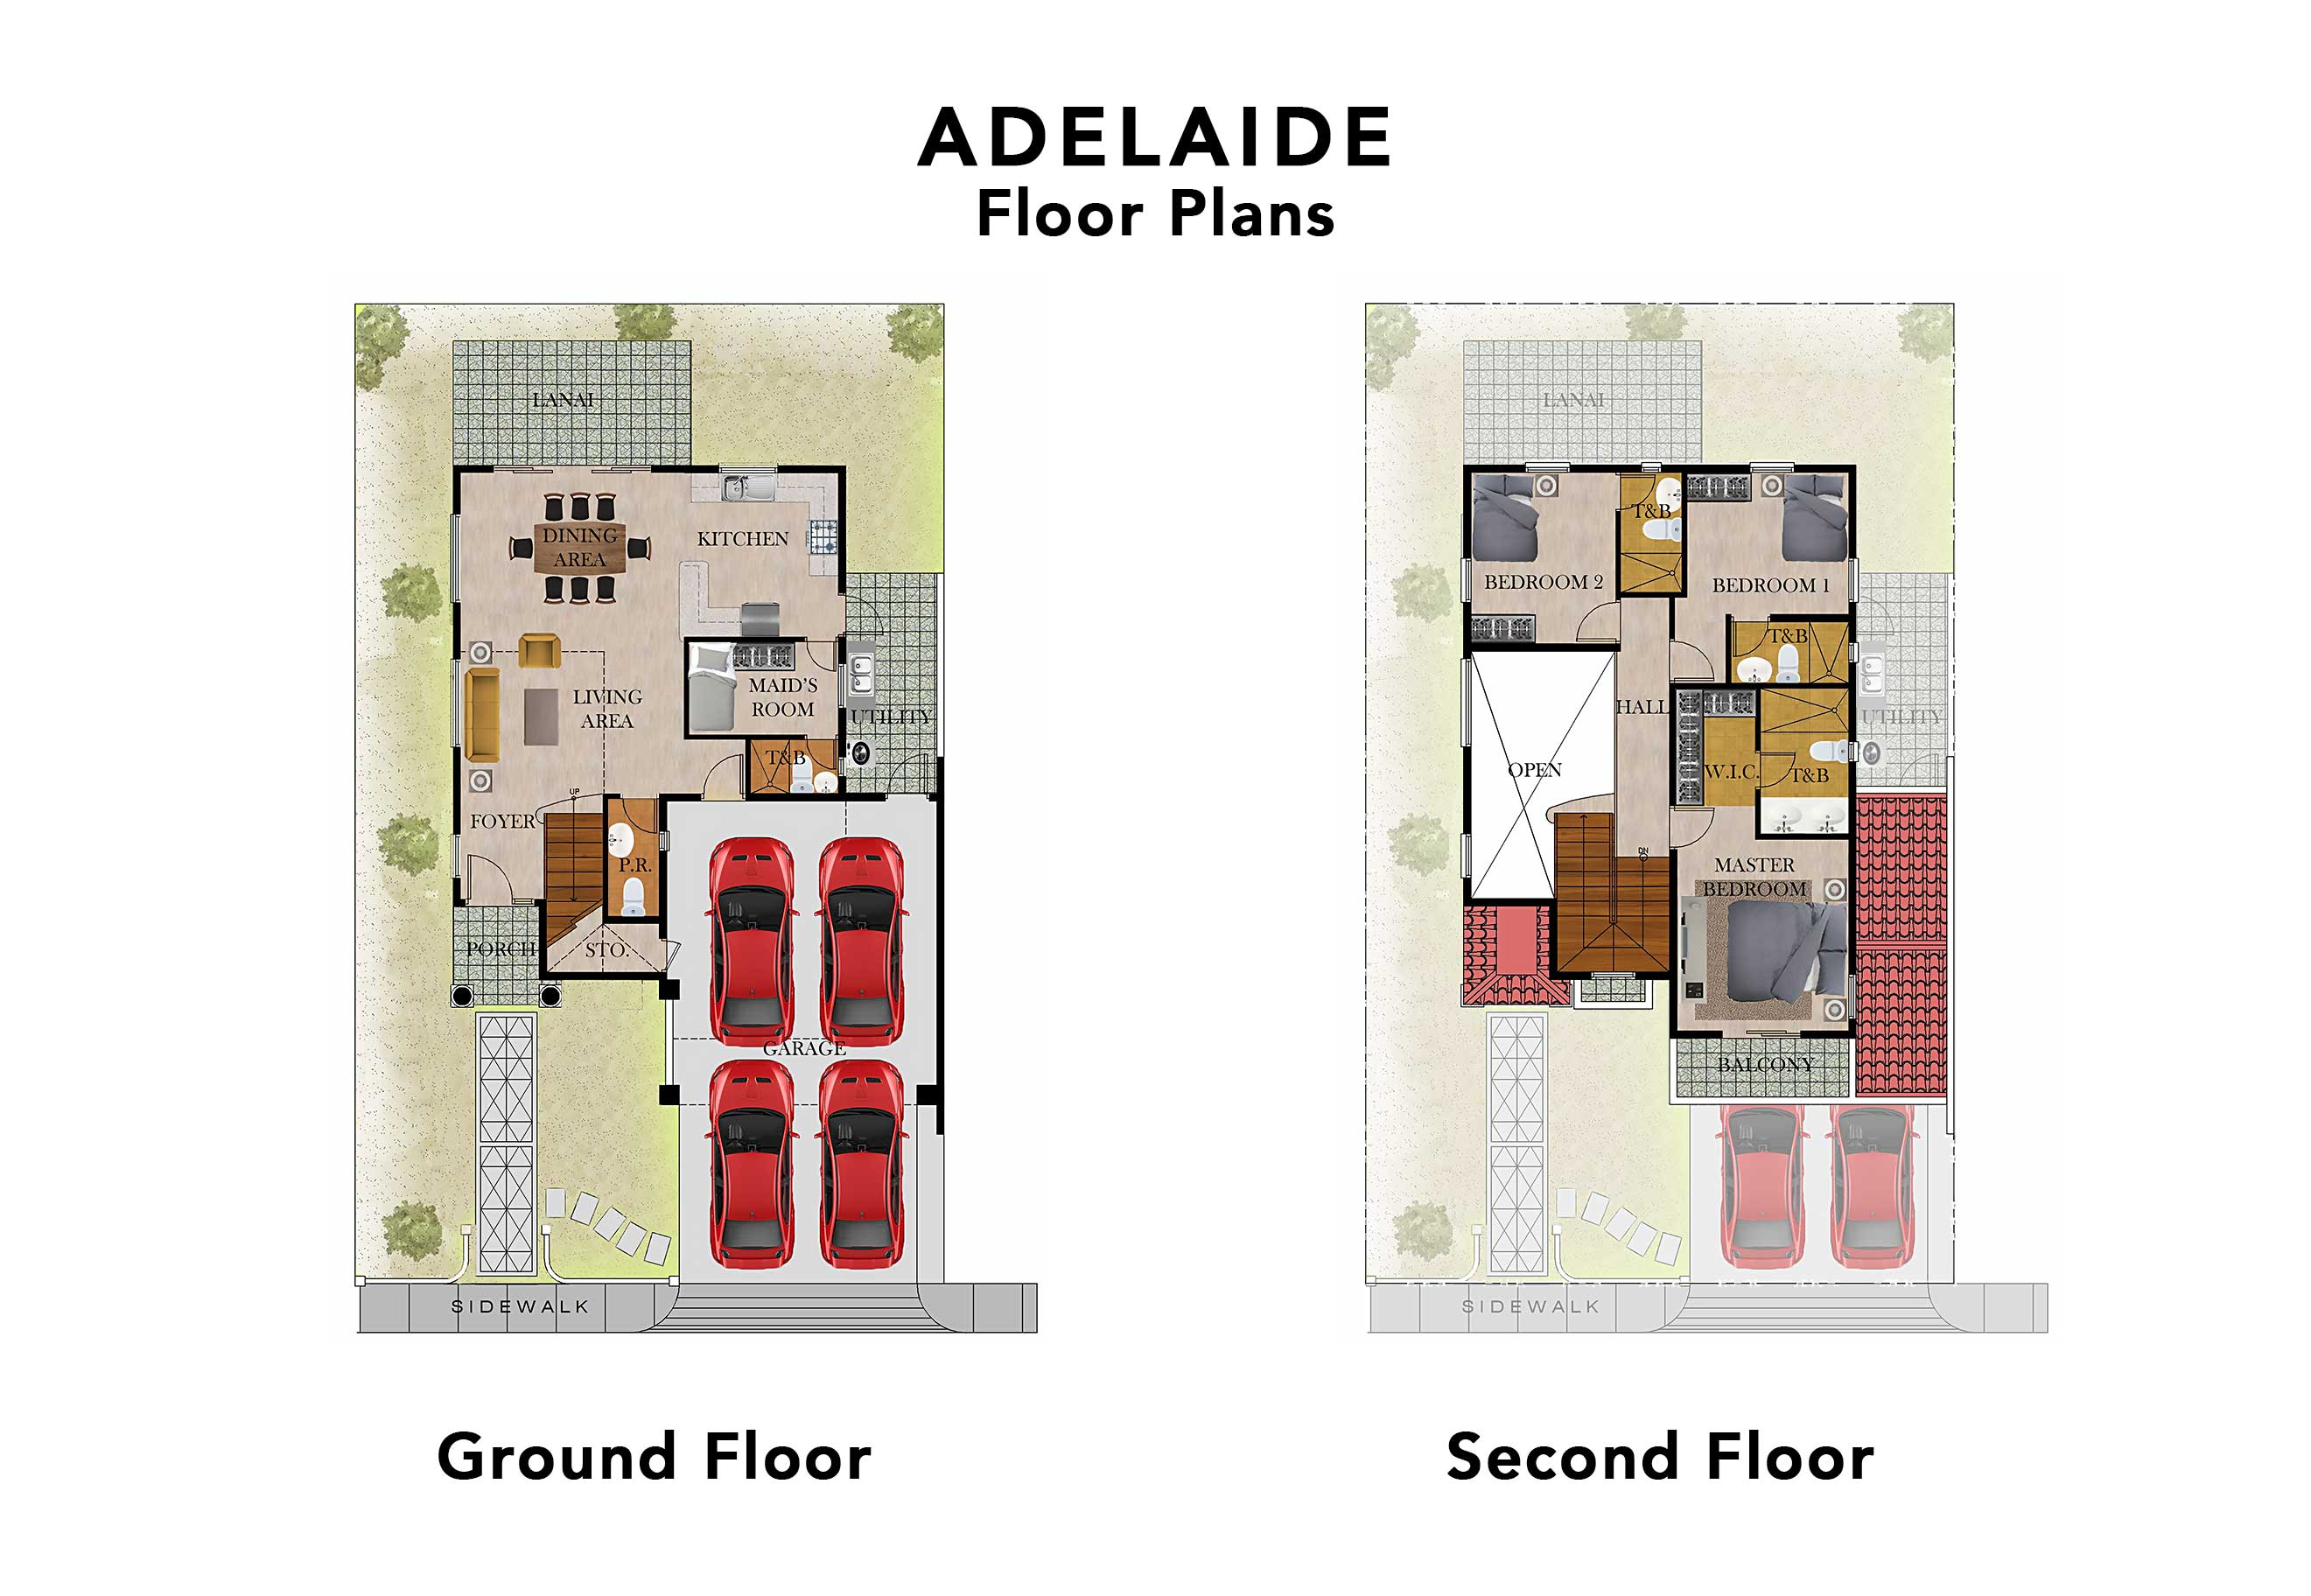 Adelaide Floor Plans UPDATED 20200818 (saved for web)